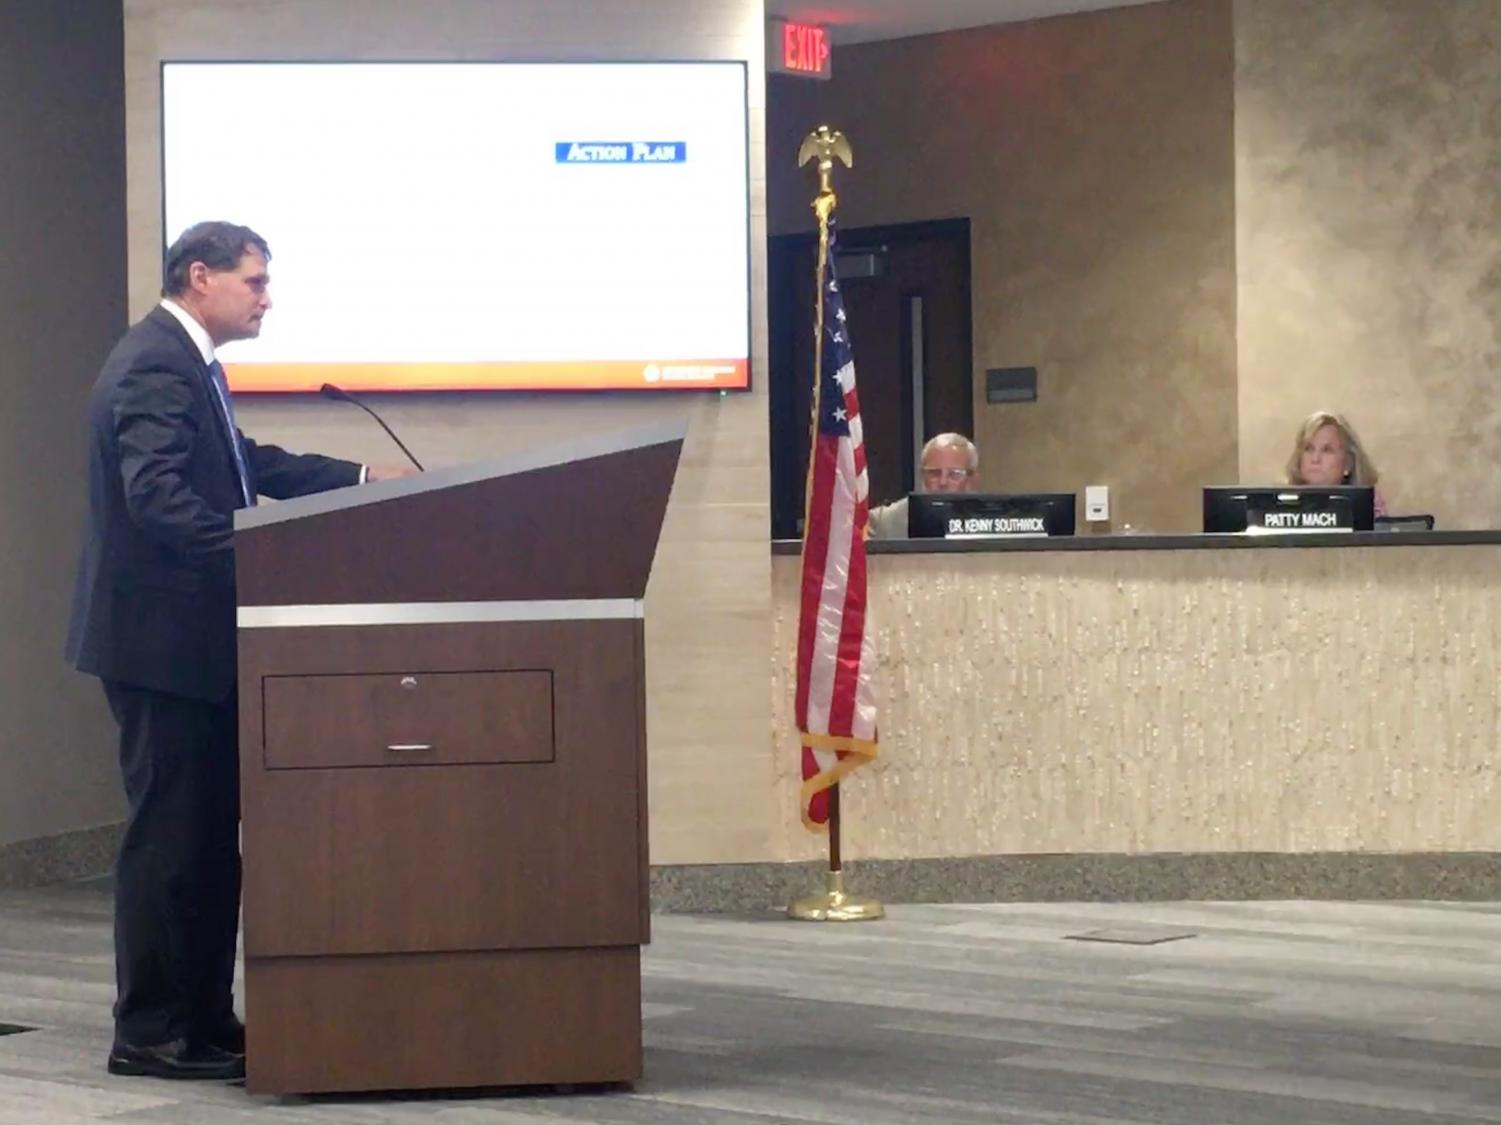 Superintendent Michael Fulton gave an update on the strategic plan at the May 29 Board of Education meeting.